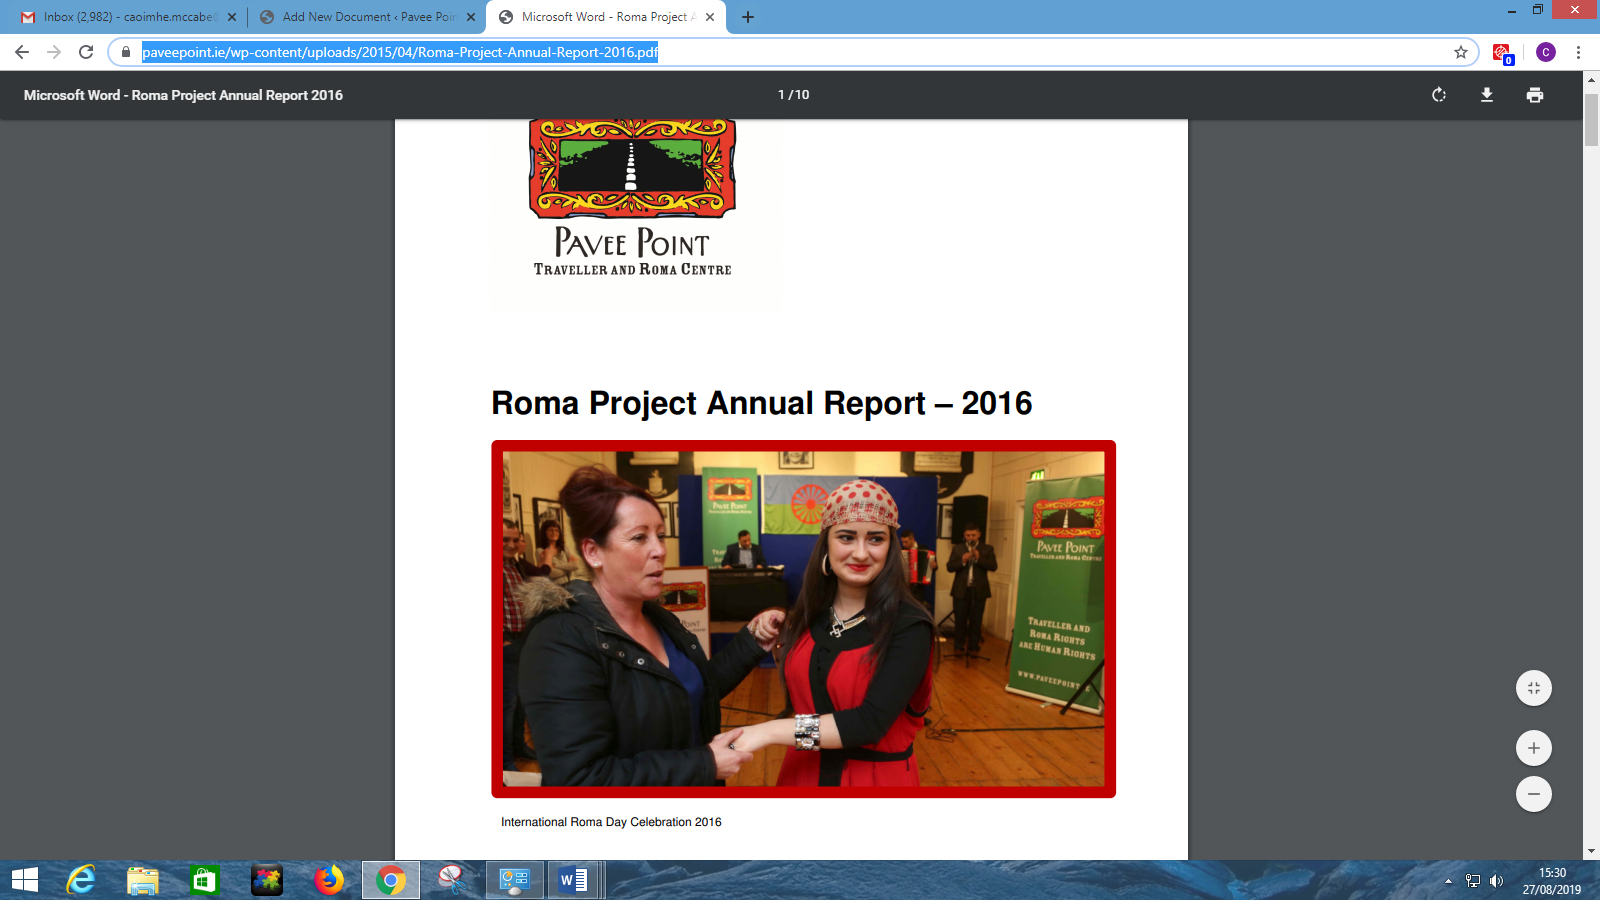 Roma Project Annual Report 2016